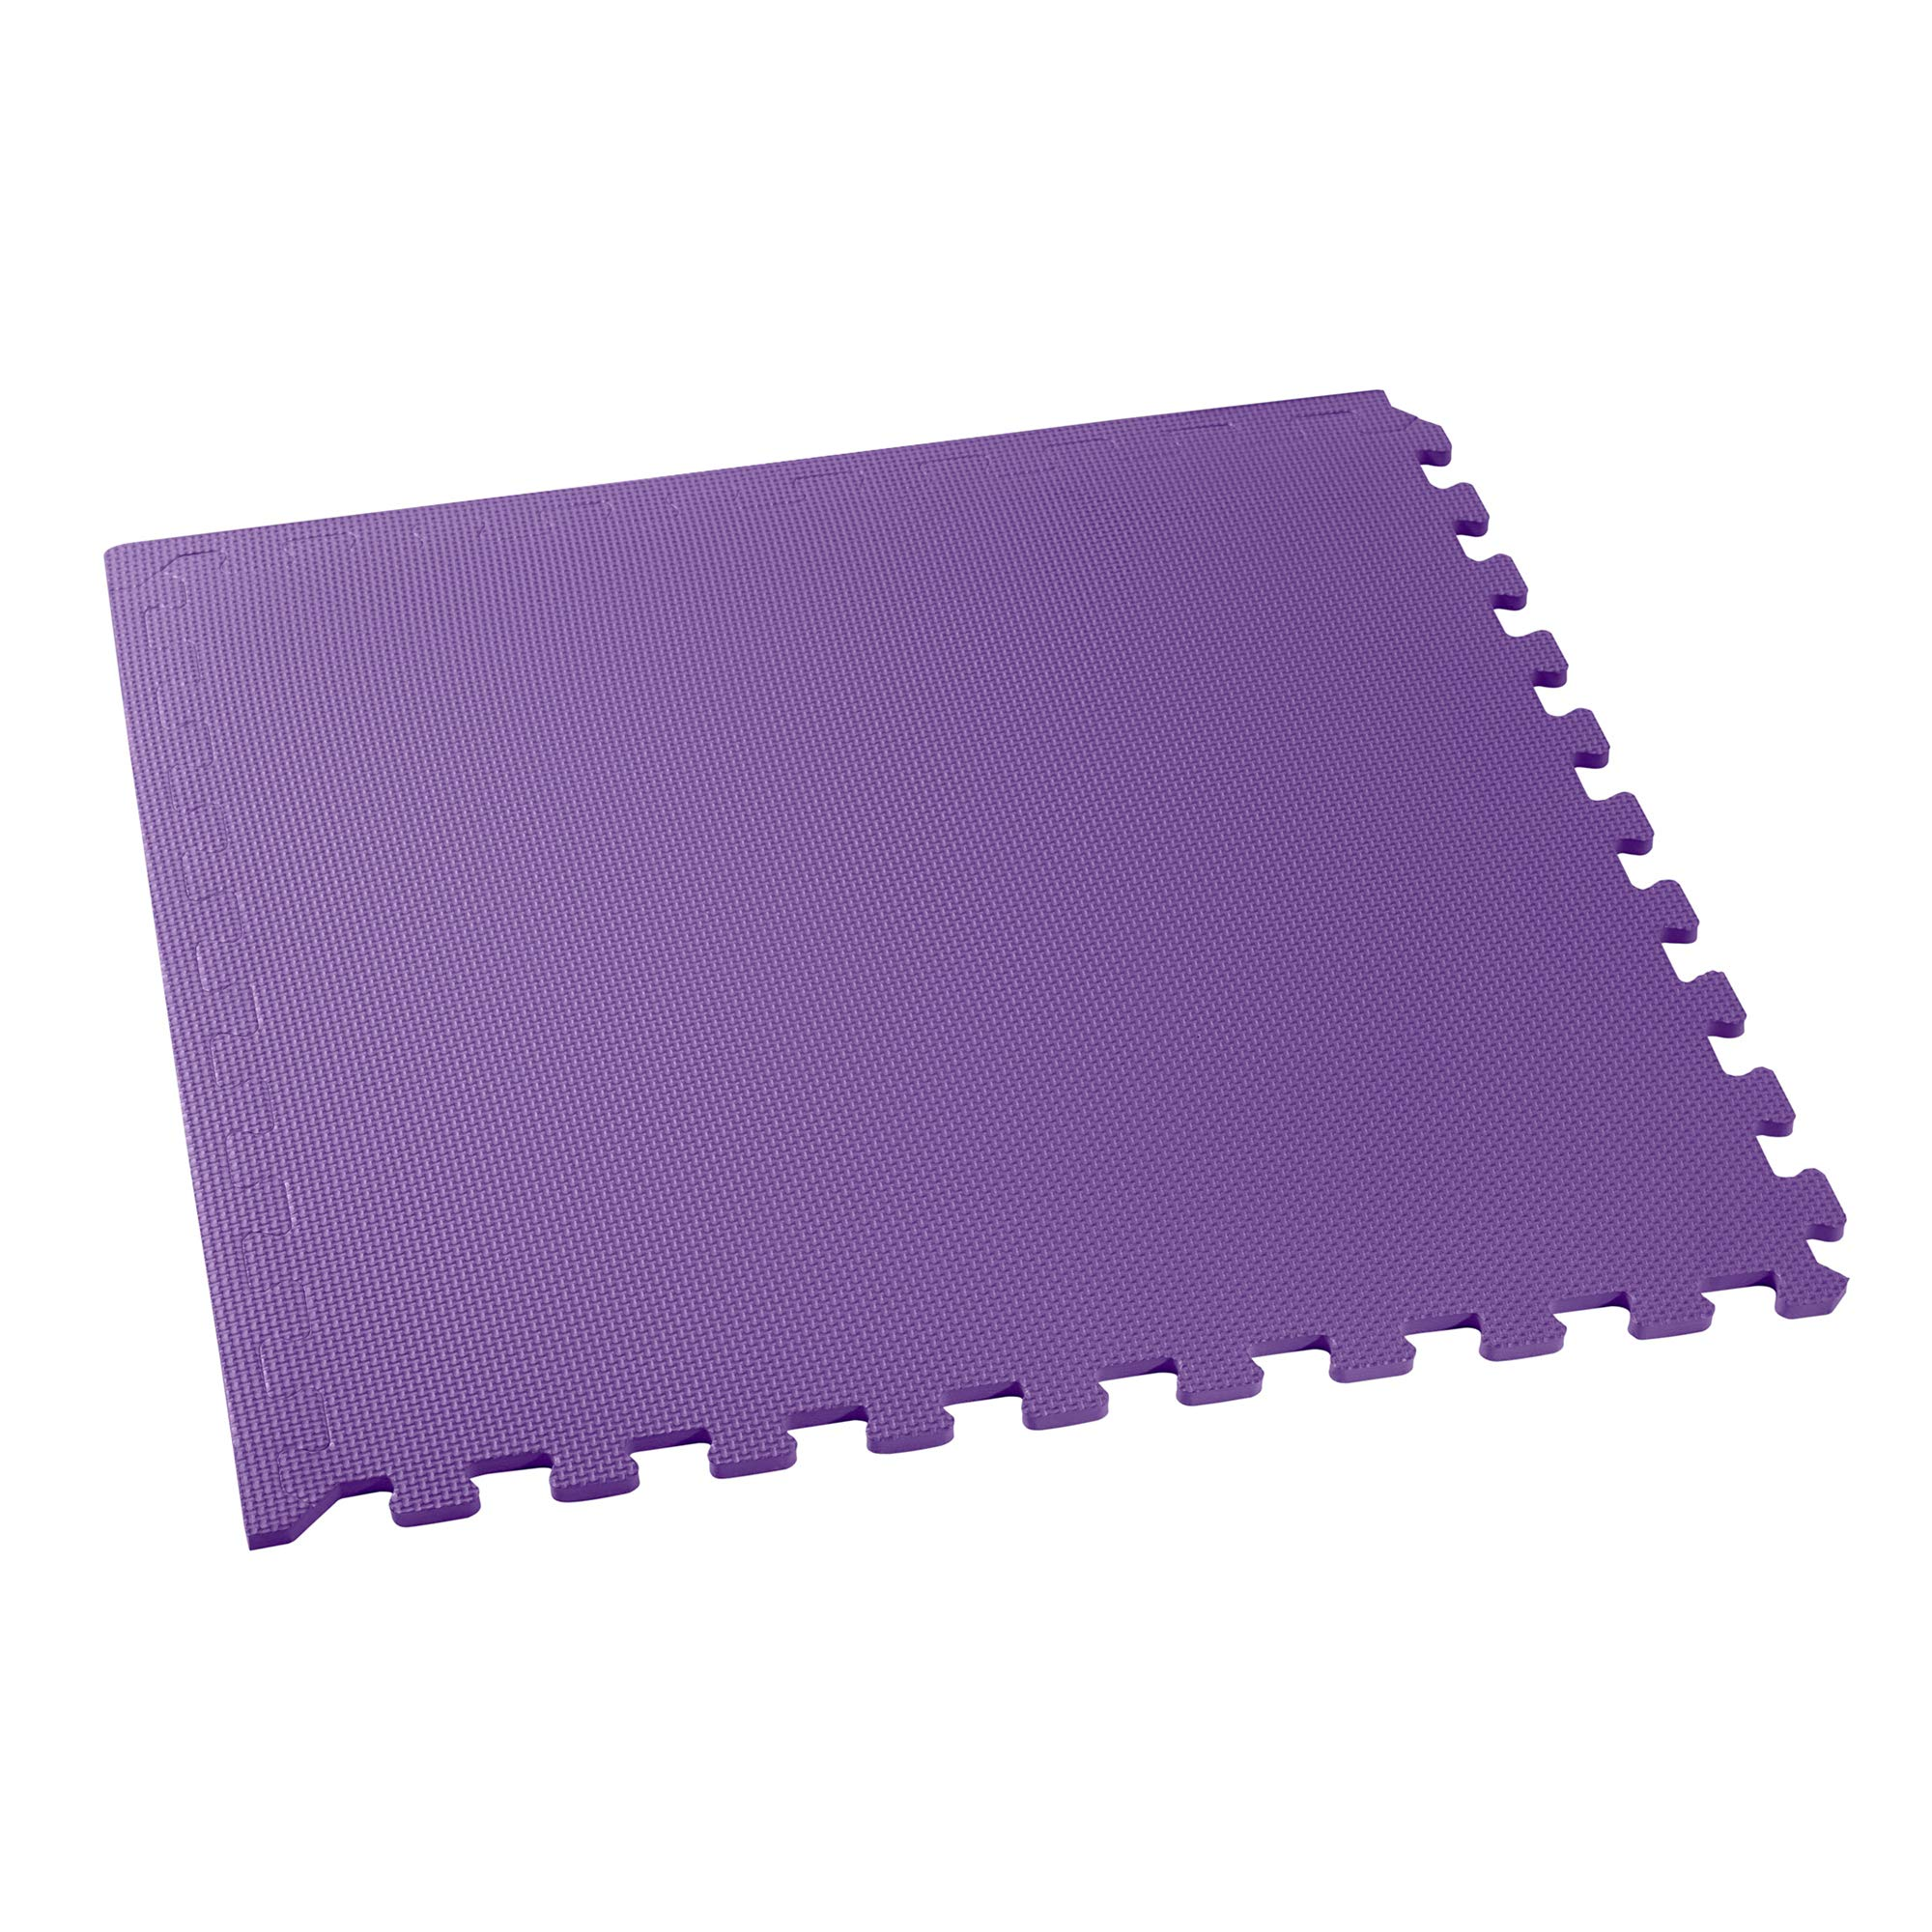 We Sell Mats Multipurpose Exercise Floor Mat with EVA Foam, Interlocking Tiles, Anti-Fatigue, for Home or Gym, 16 Square Feet (4 Tiles), 24 x 24 x 3/8 Inches, Purple